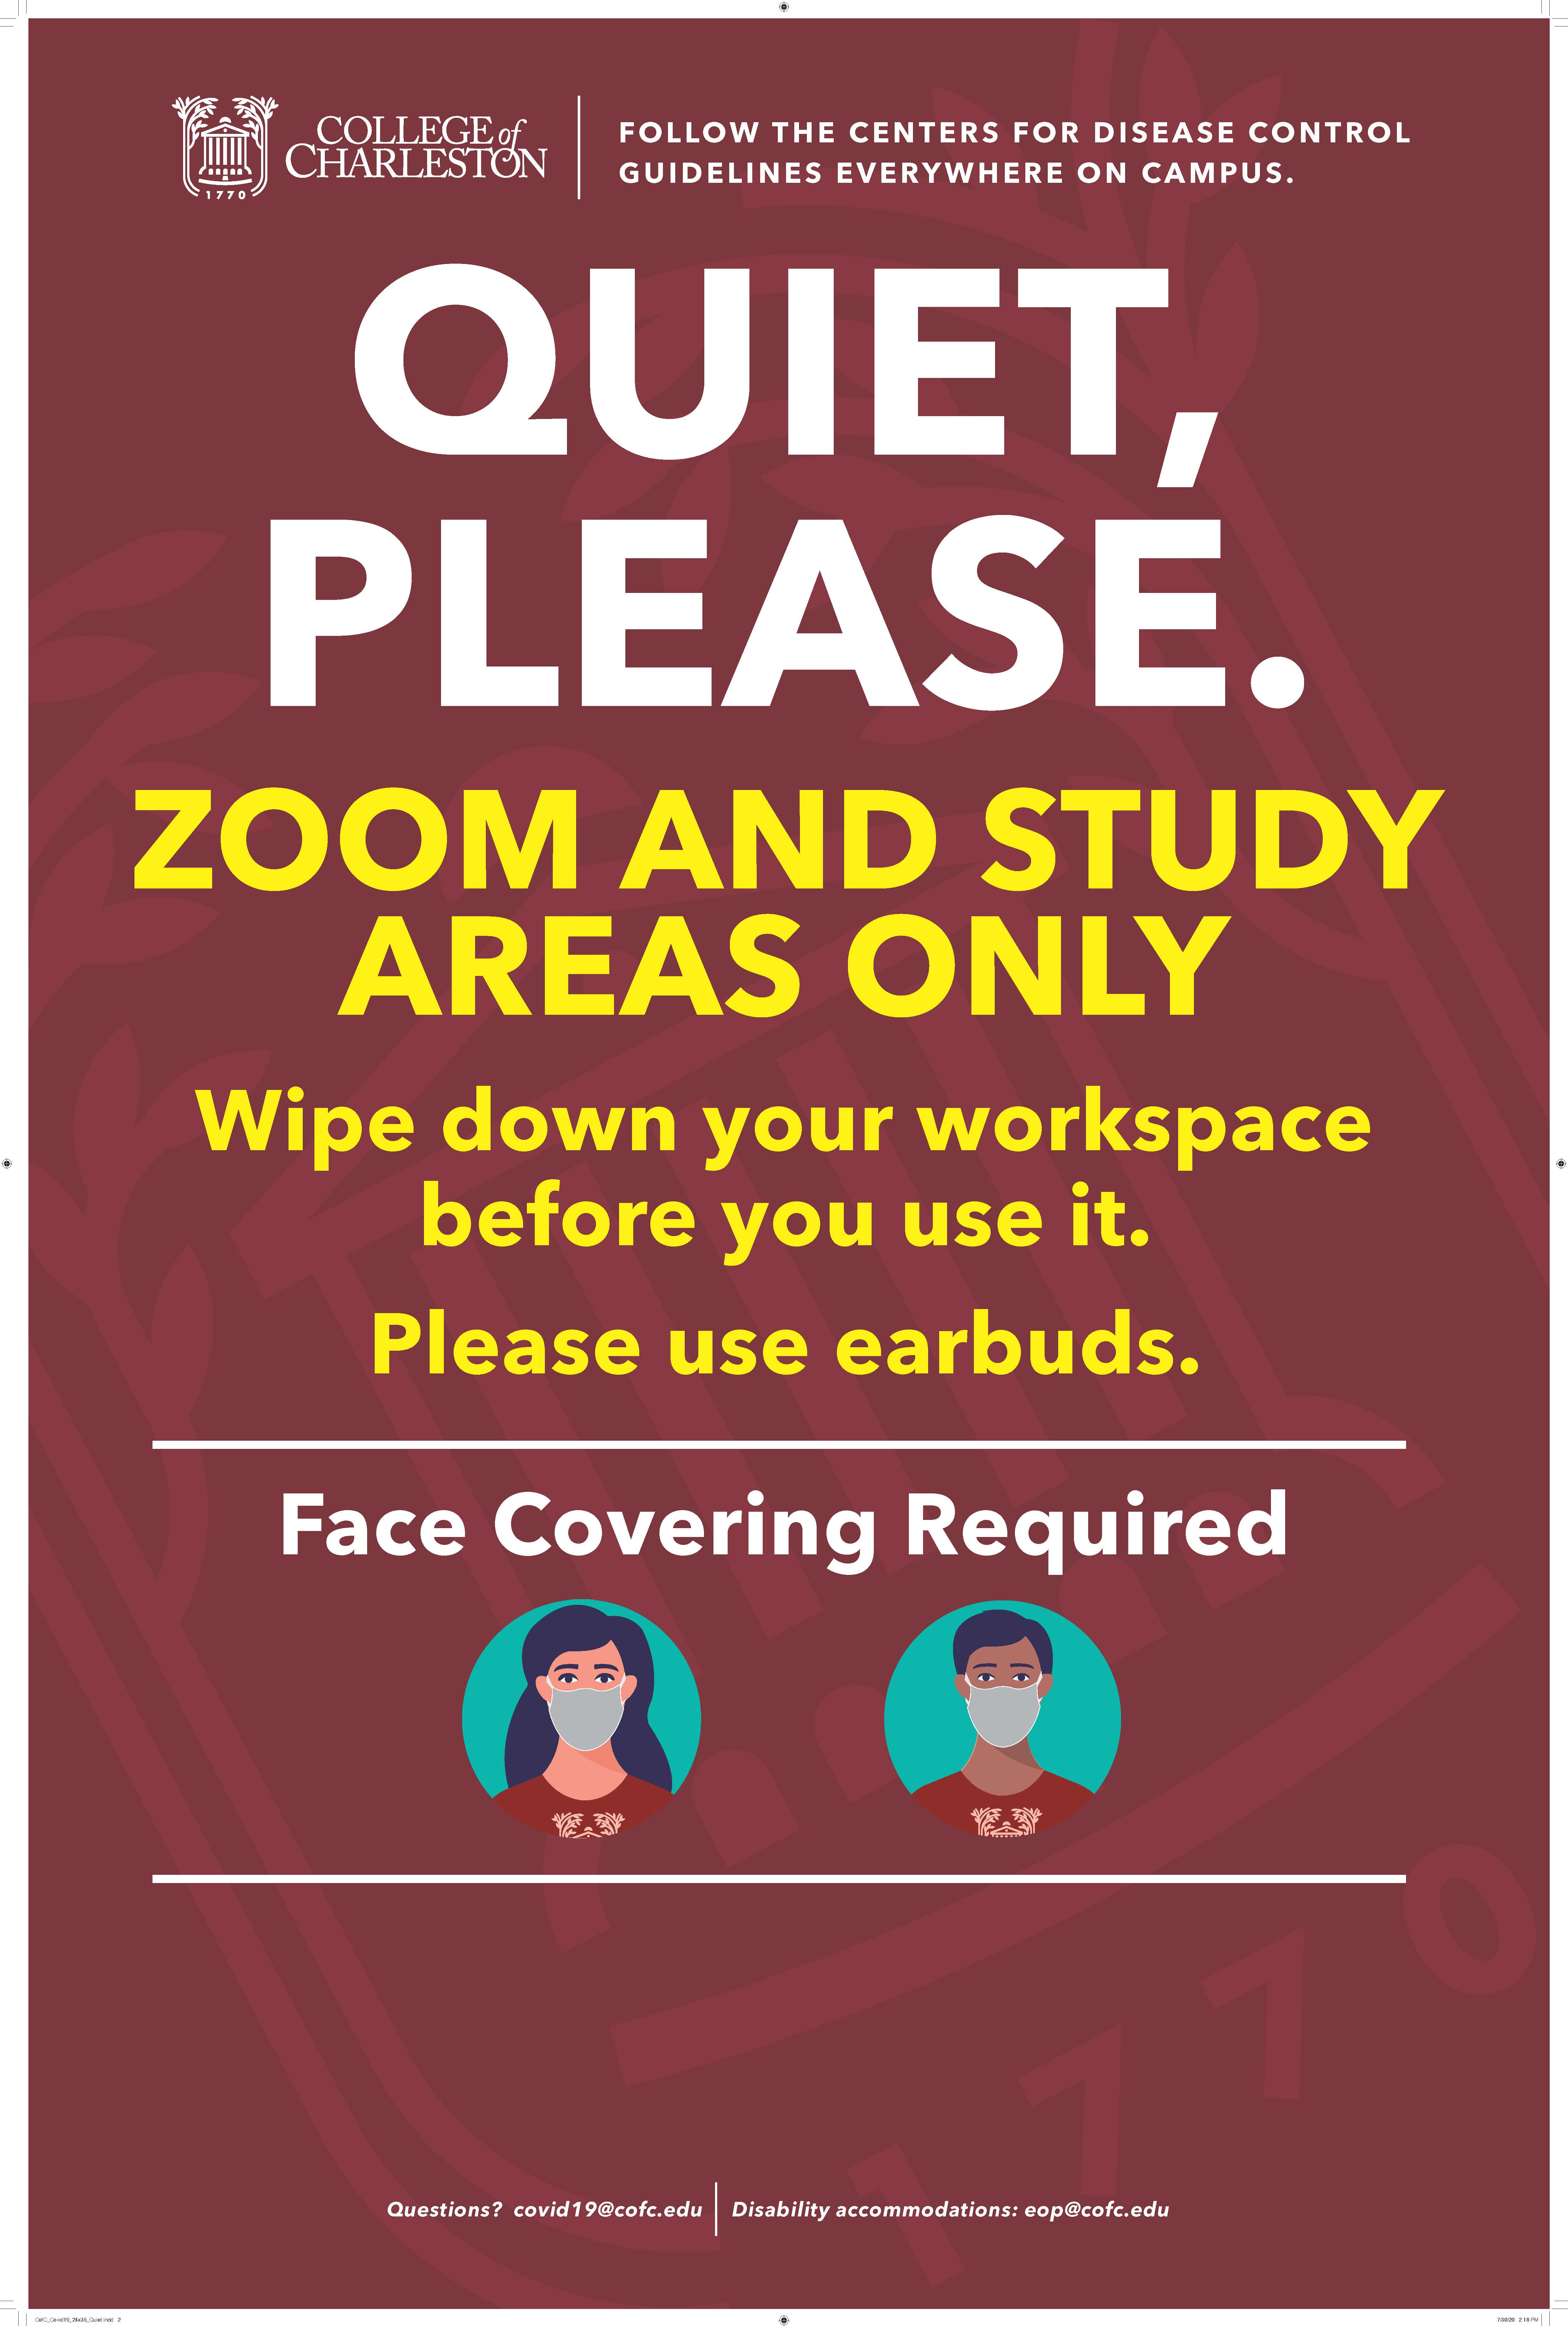 image of signage for zoom and study area